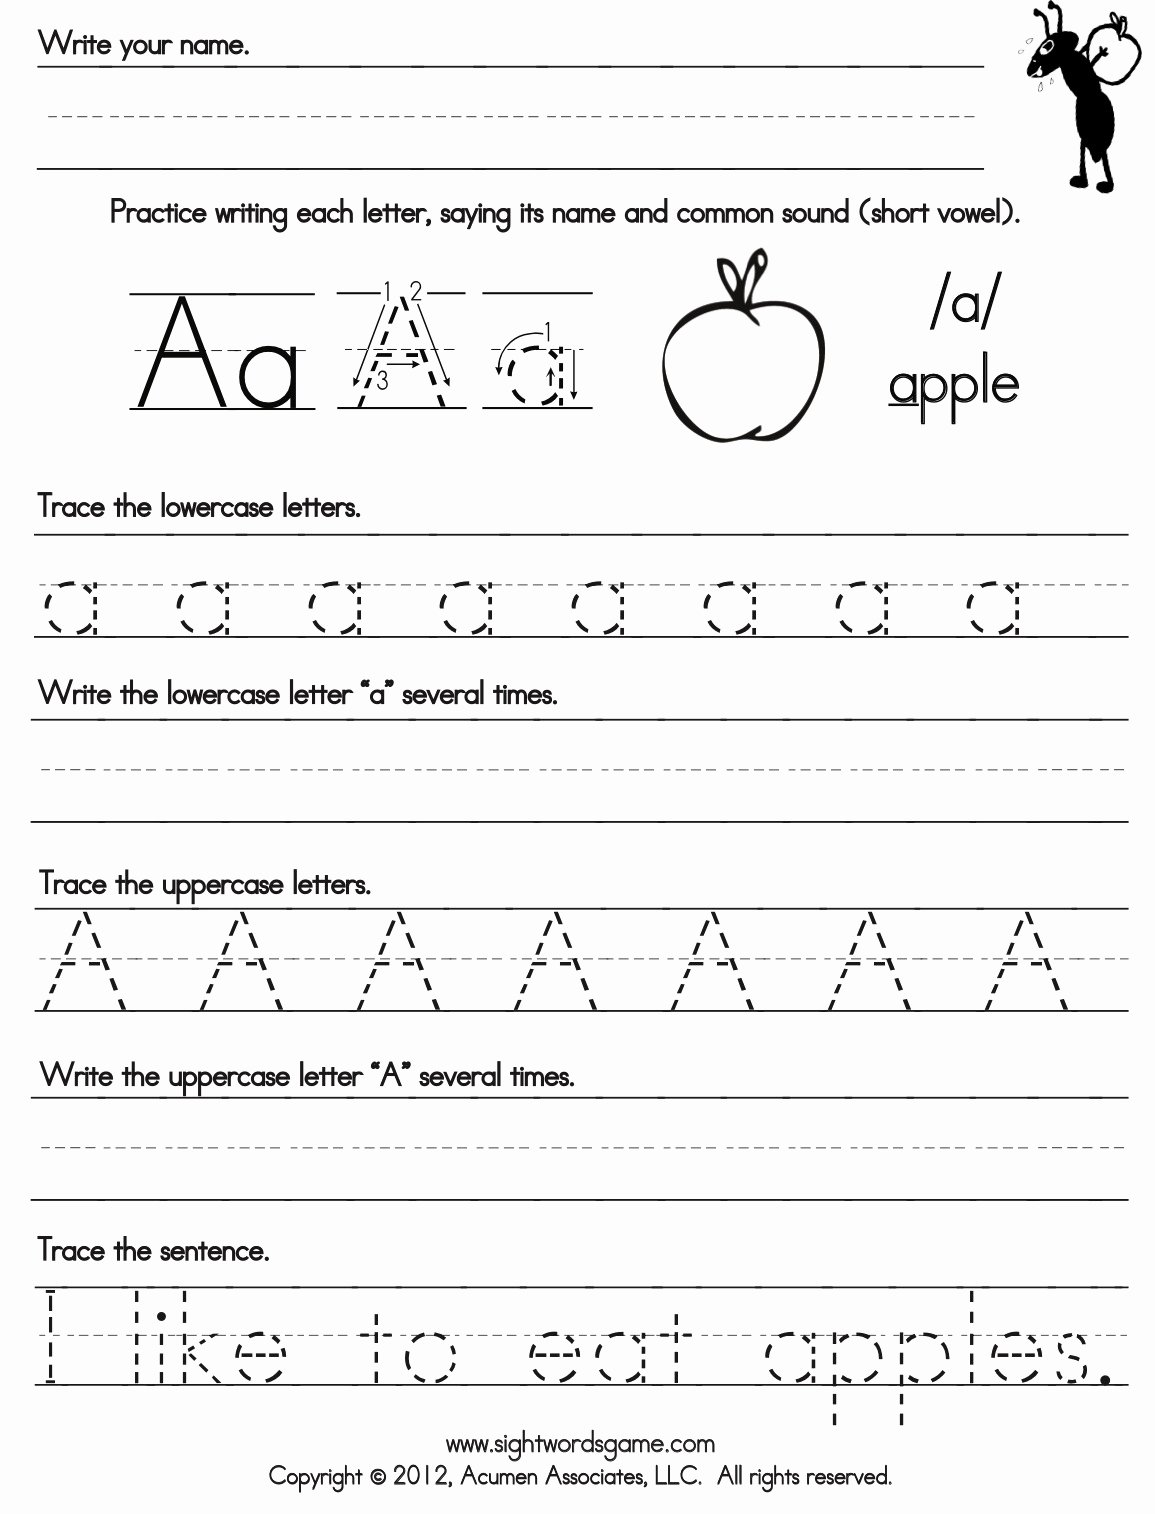 hight resolution of Writing Abc Worksheets for Preschoolers Awesome Tracing Letters Preschool  Worksheets Letter Alphabet Writing – Printable Worksheets for Kids